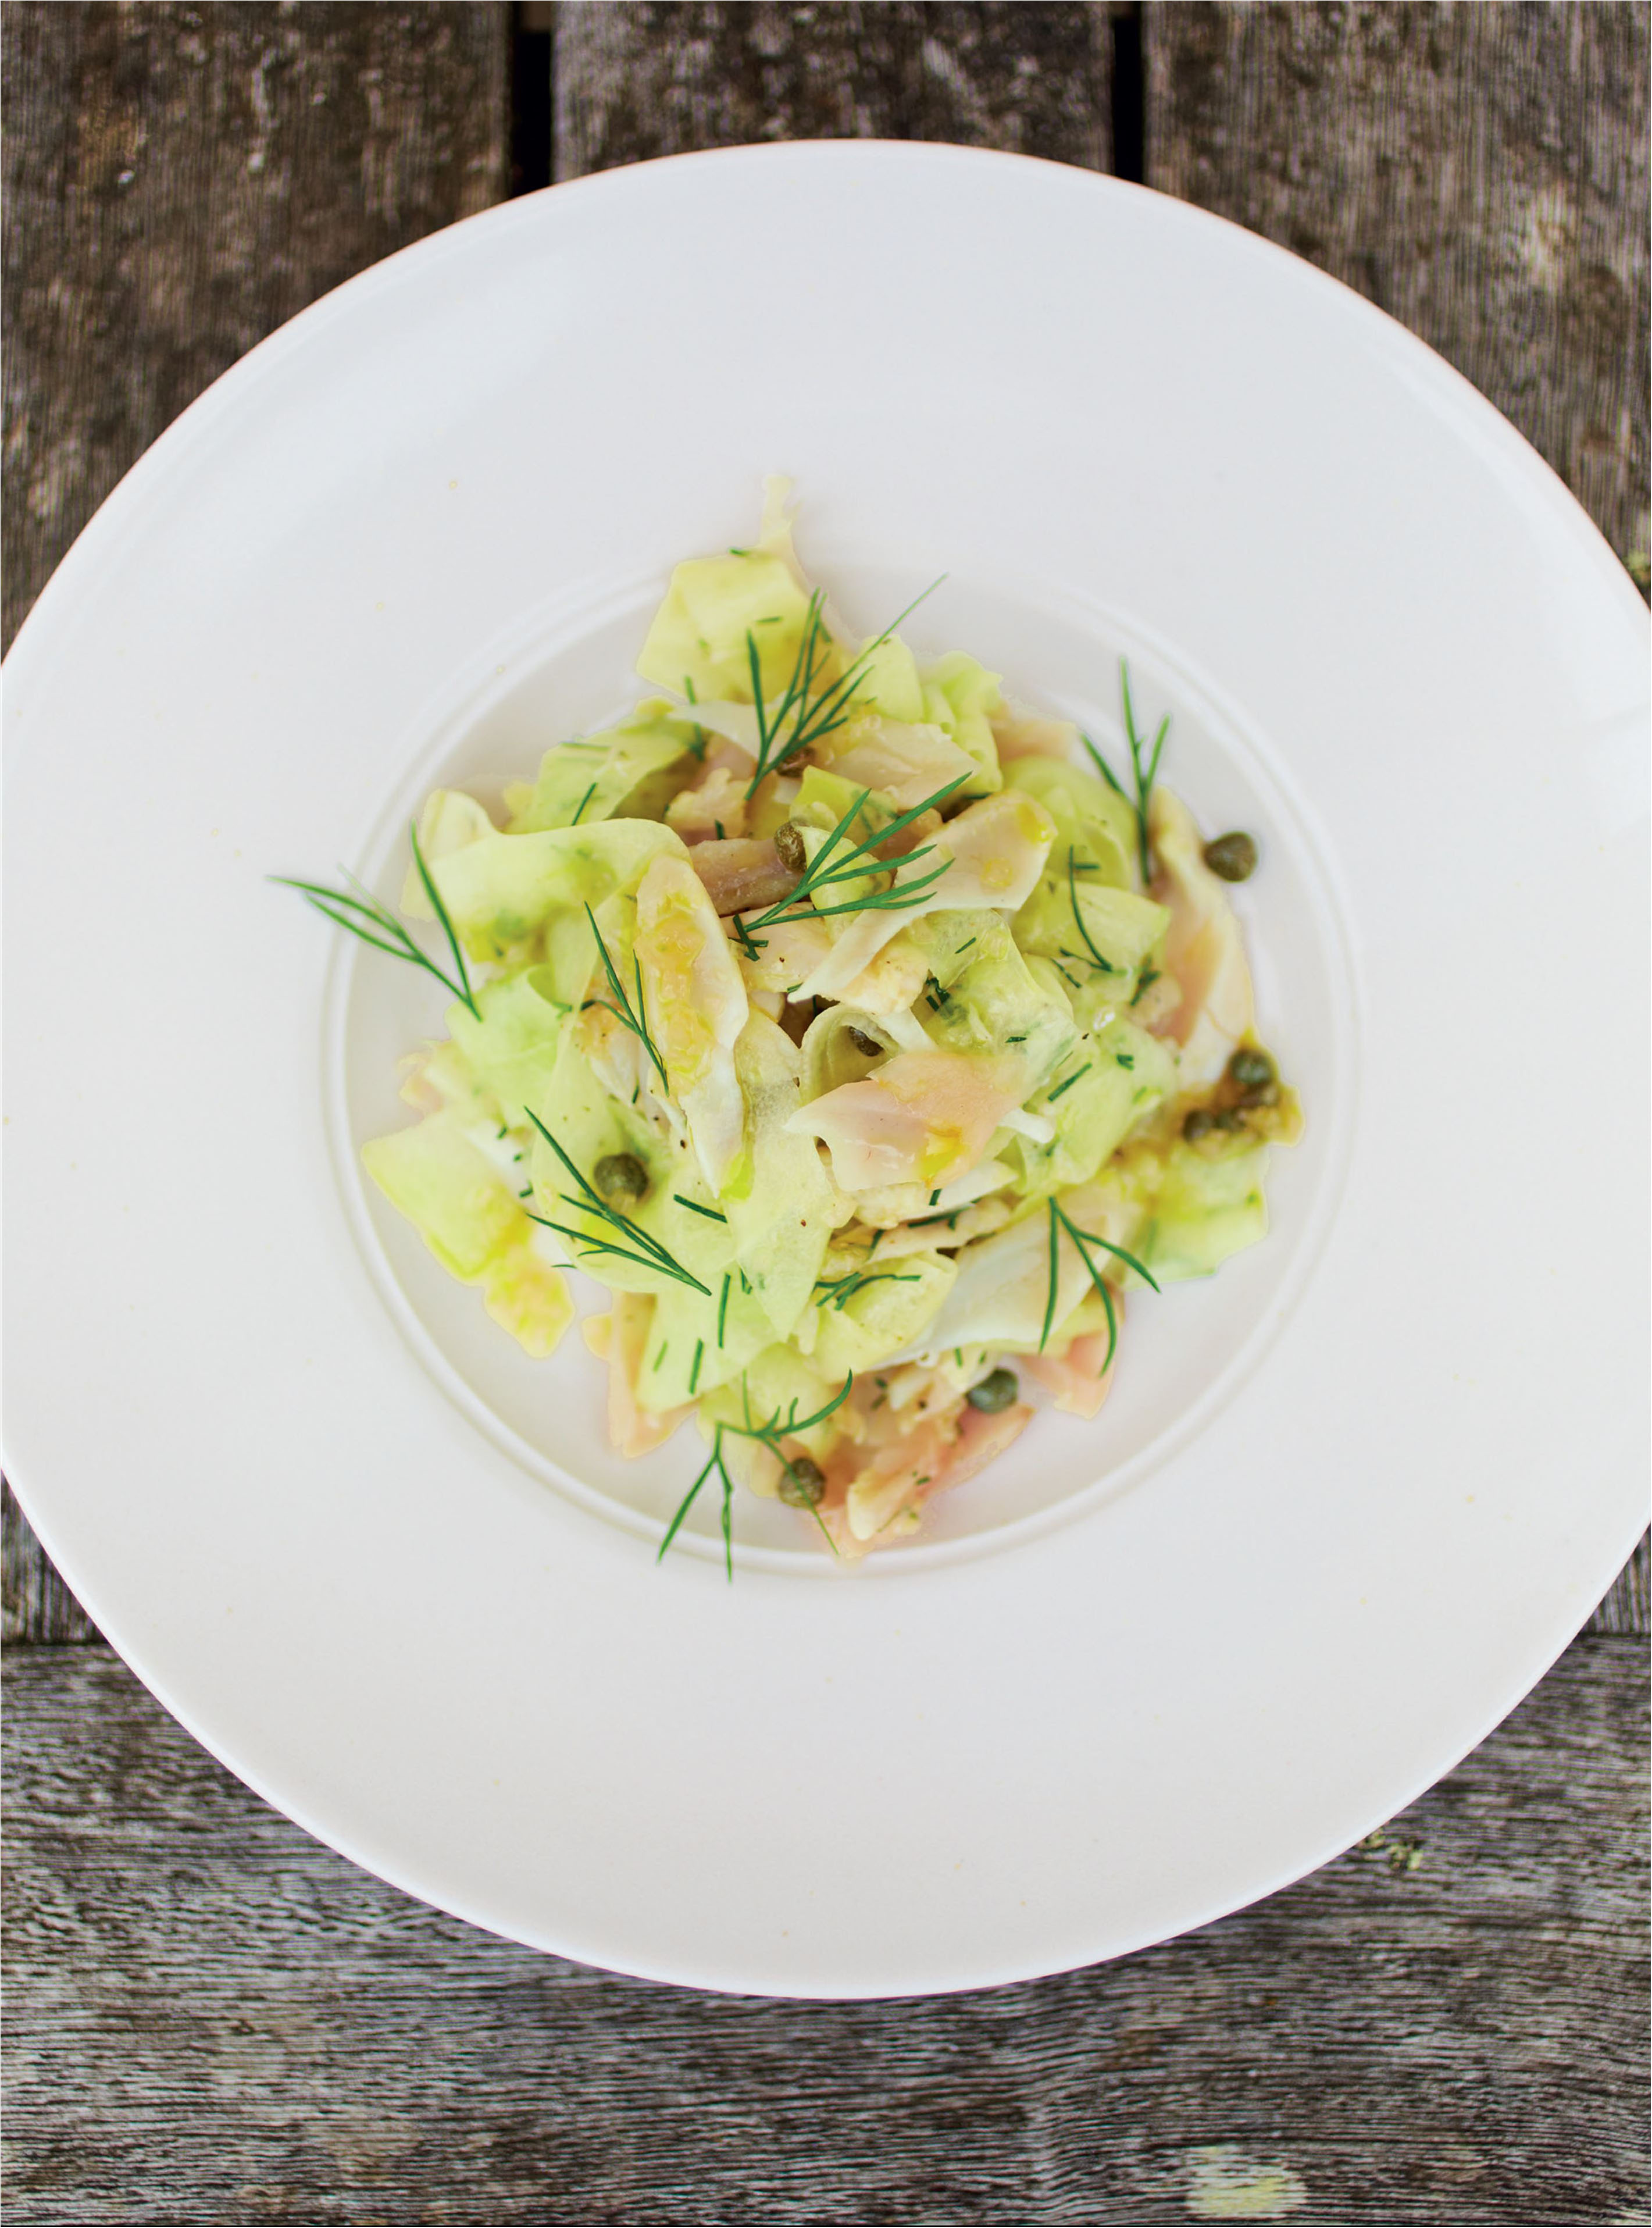 Mackerel cured in cucumber and oyster juice with cucumber, dill and caper salad